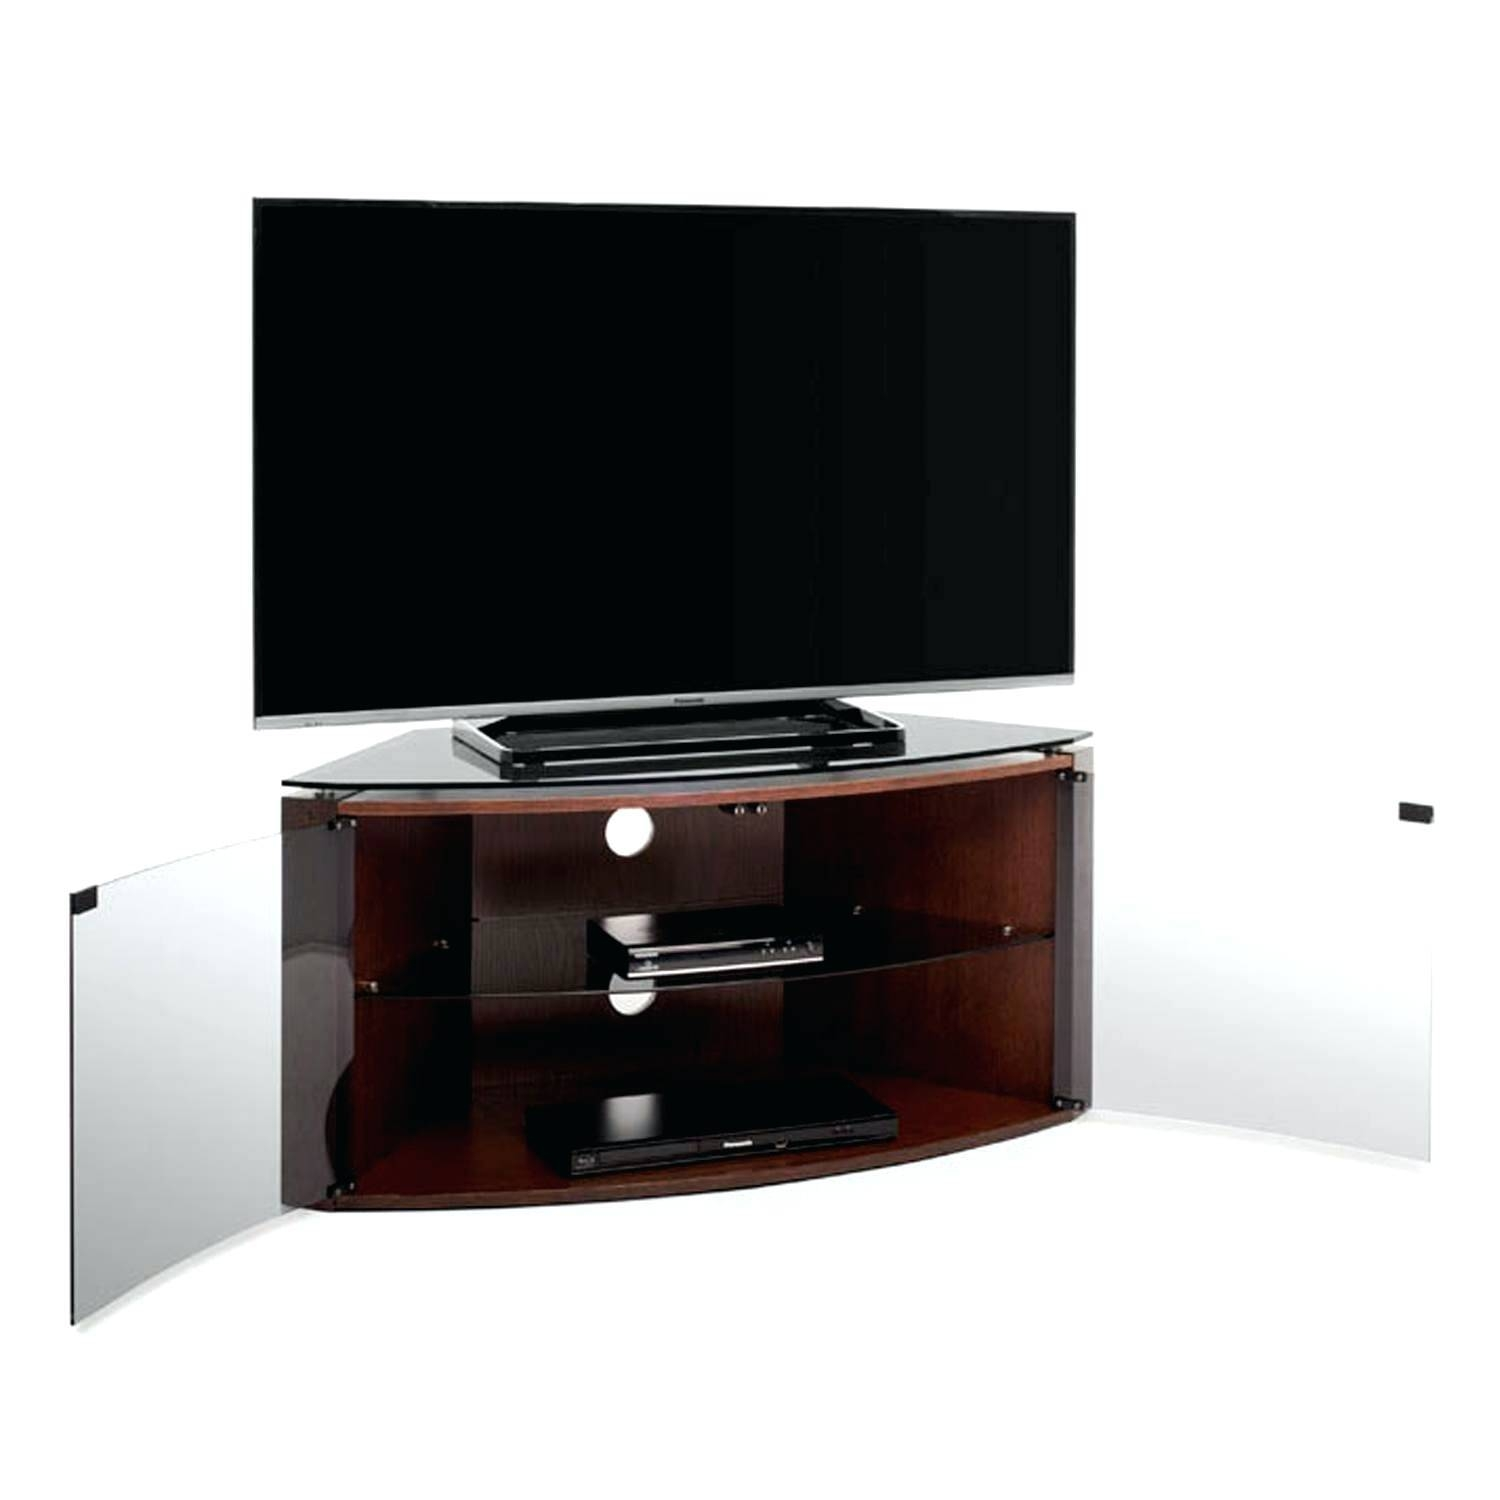 Articles With Cheap Techlink Tv Stands Tag: Gorgeous Techlink Tv intended for Cheap Techlink Tv Stands (Image 2 of 15)